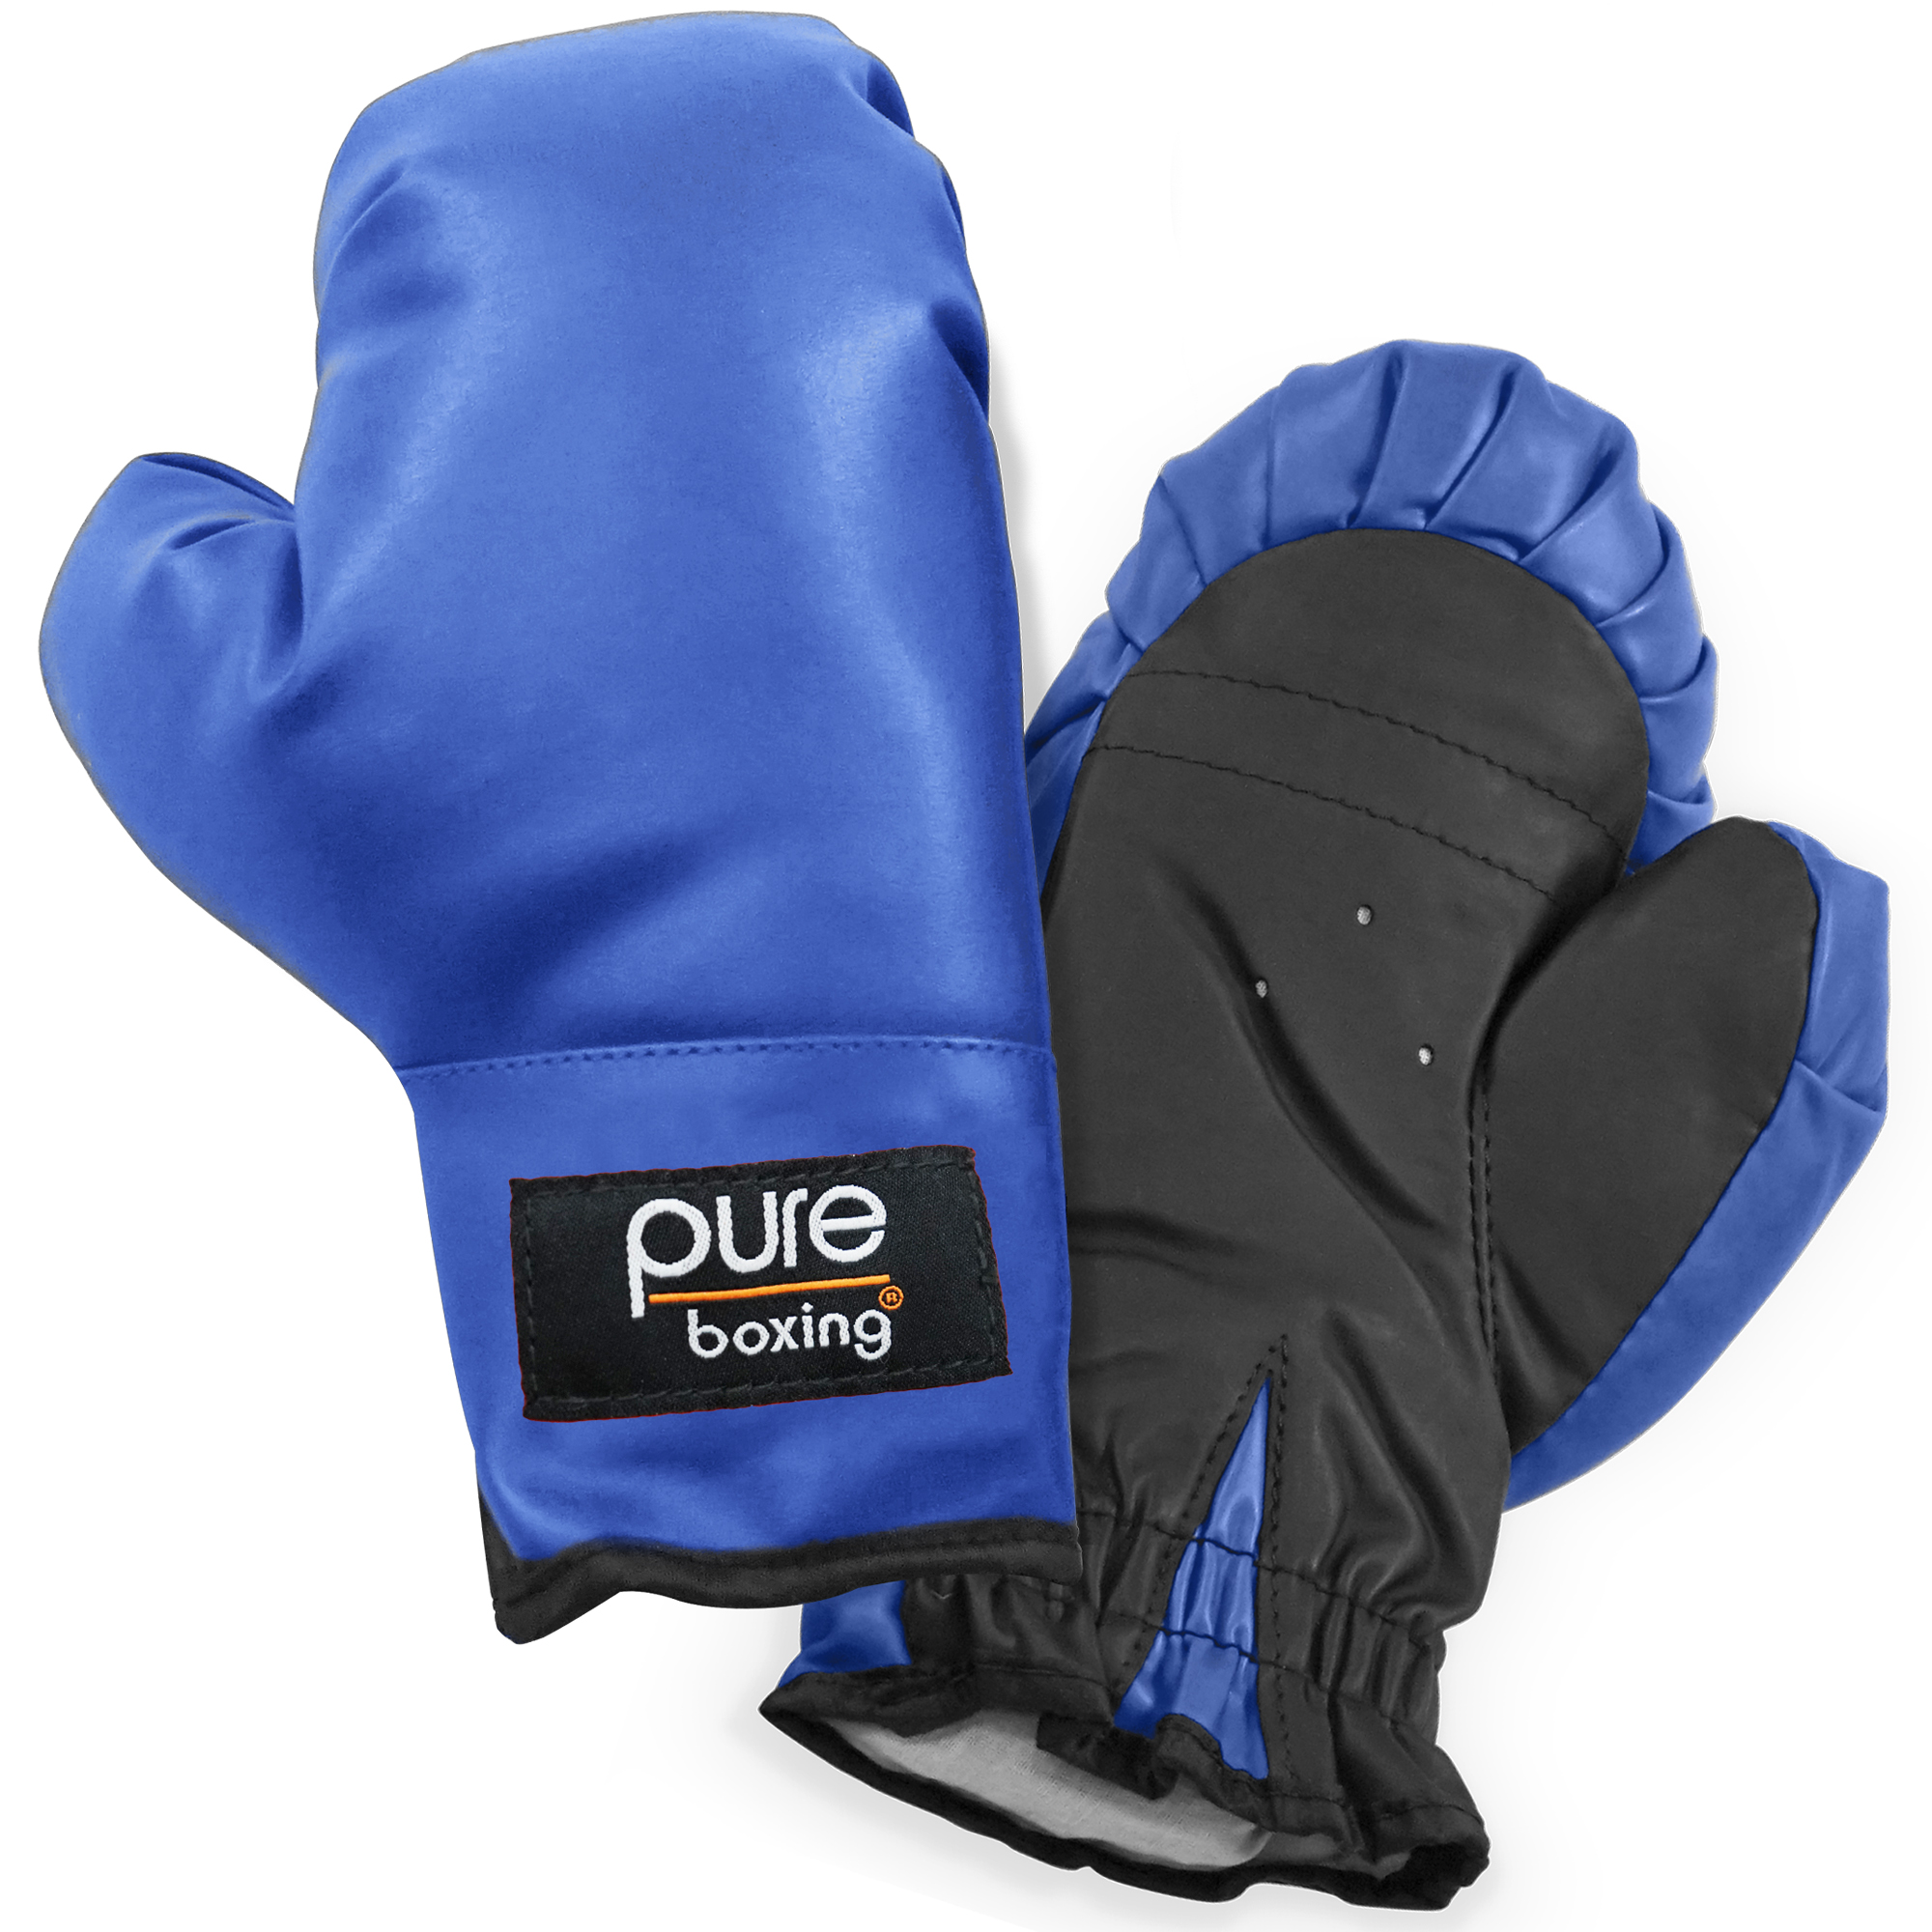 Pure Boxing Kids Boxing Gloves, Blue - 8900BGB - Main